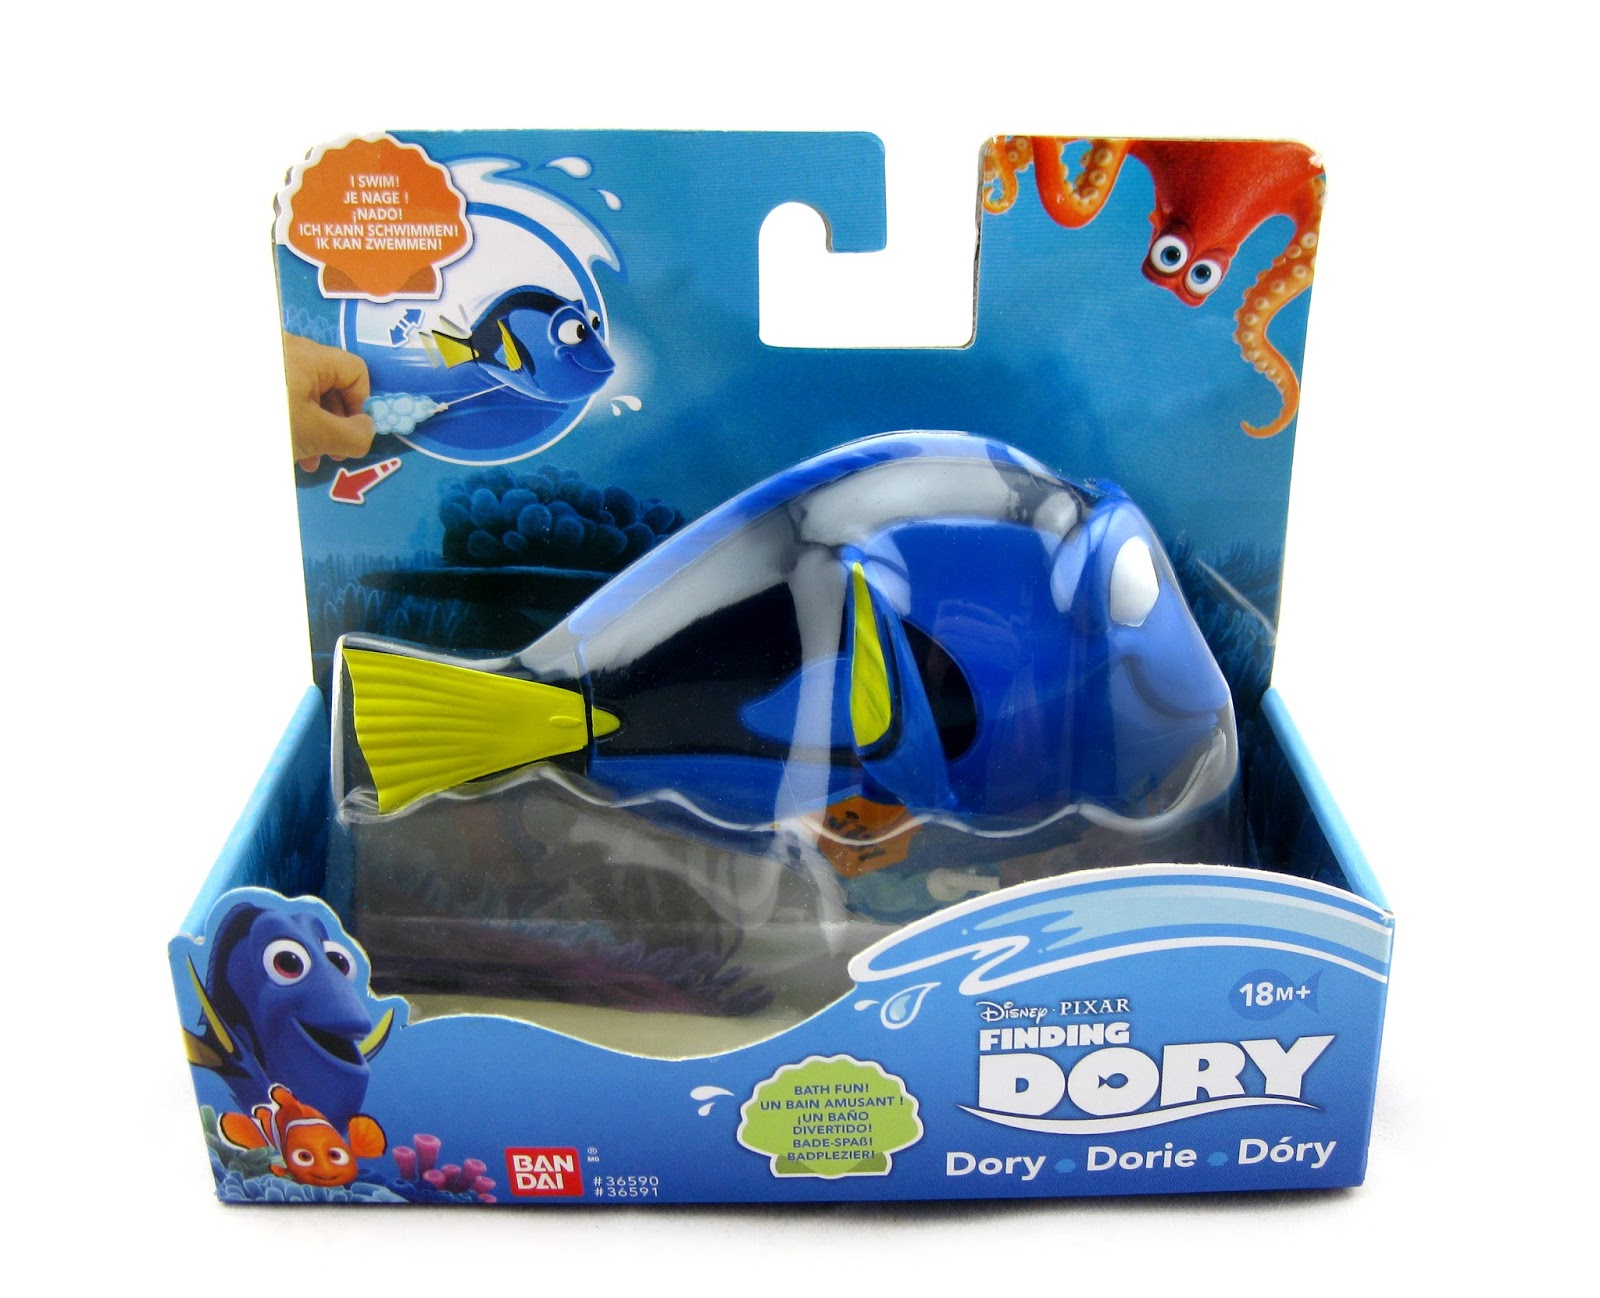 dan the pixar fan finding dory swimming bath toys collection from